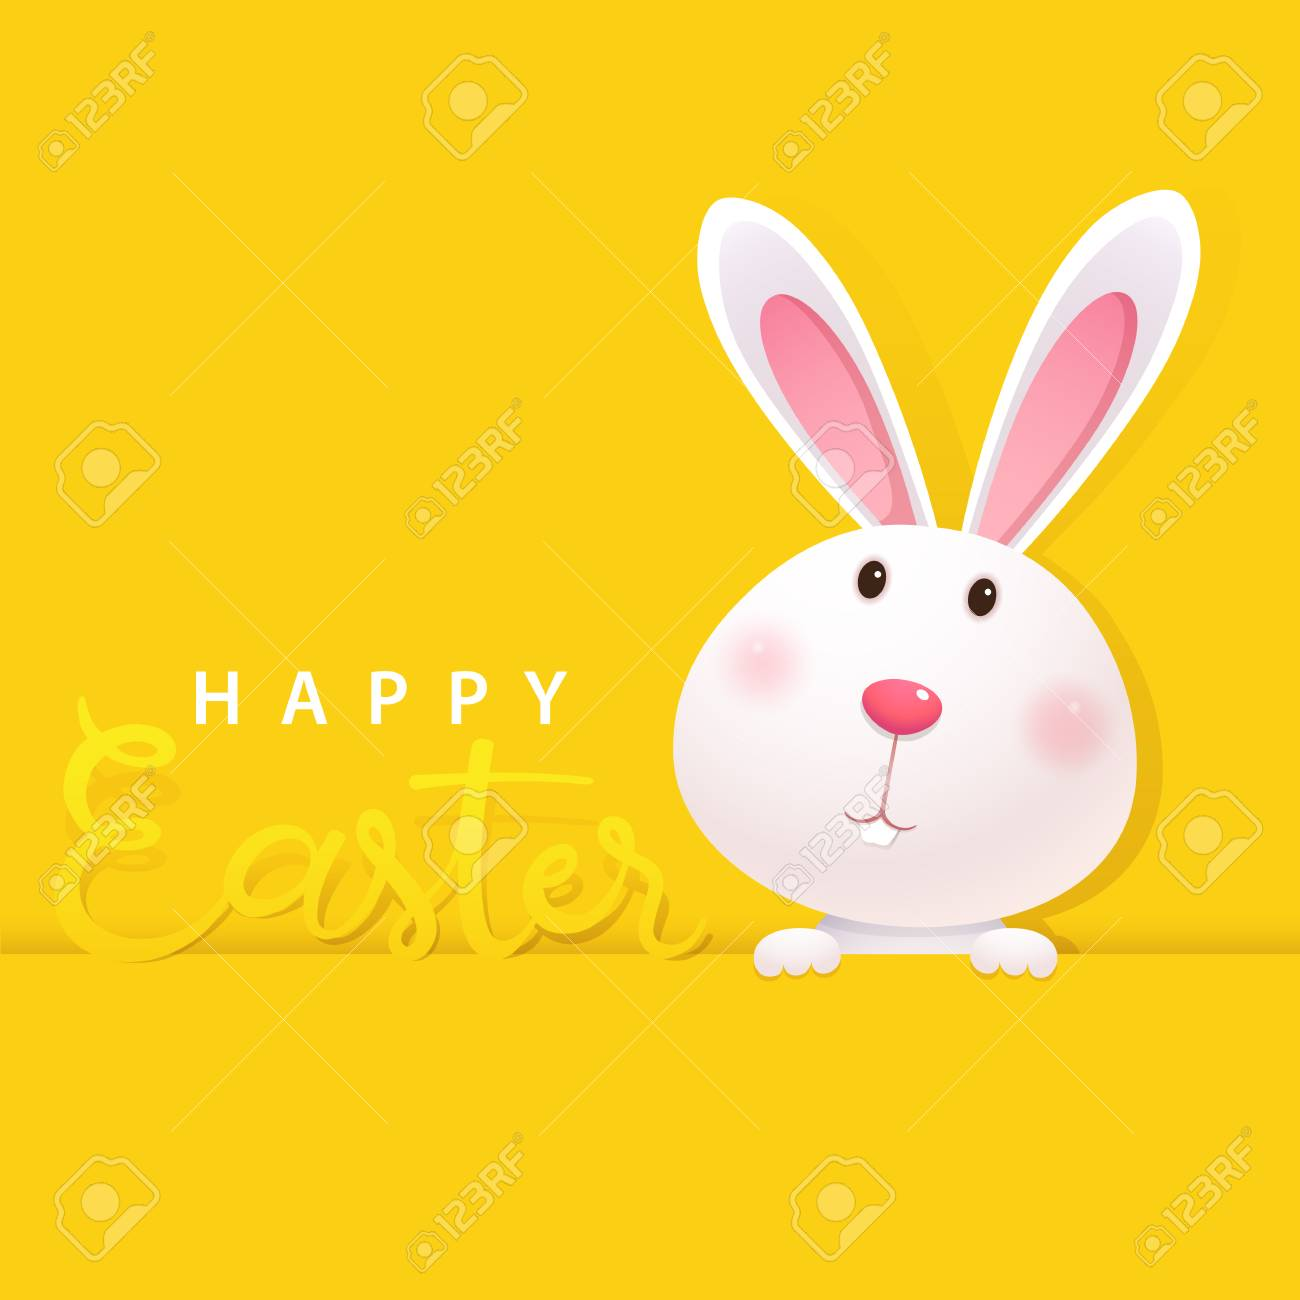 Greeting card with white Easter Bunny on yellow background. Happy Easter lettering card with cute rabbit - 96069154